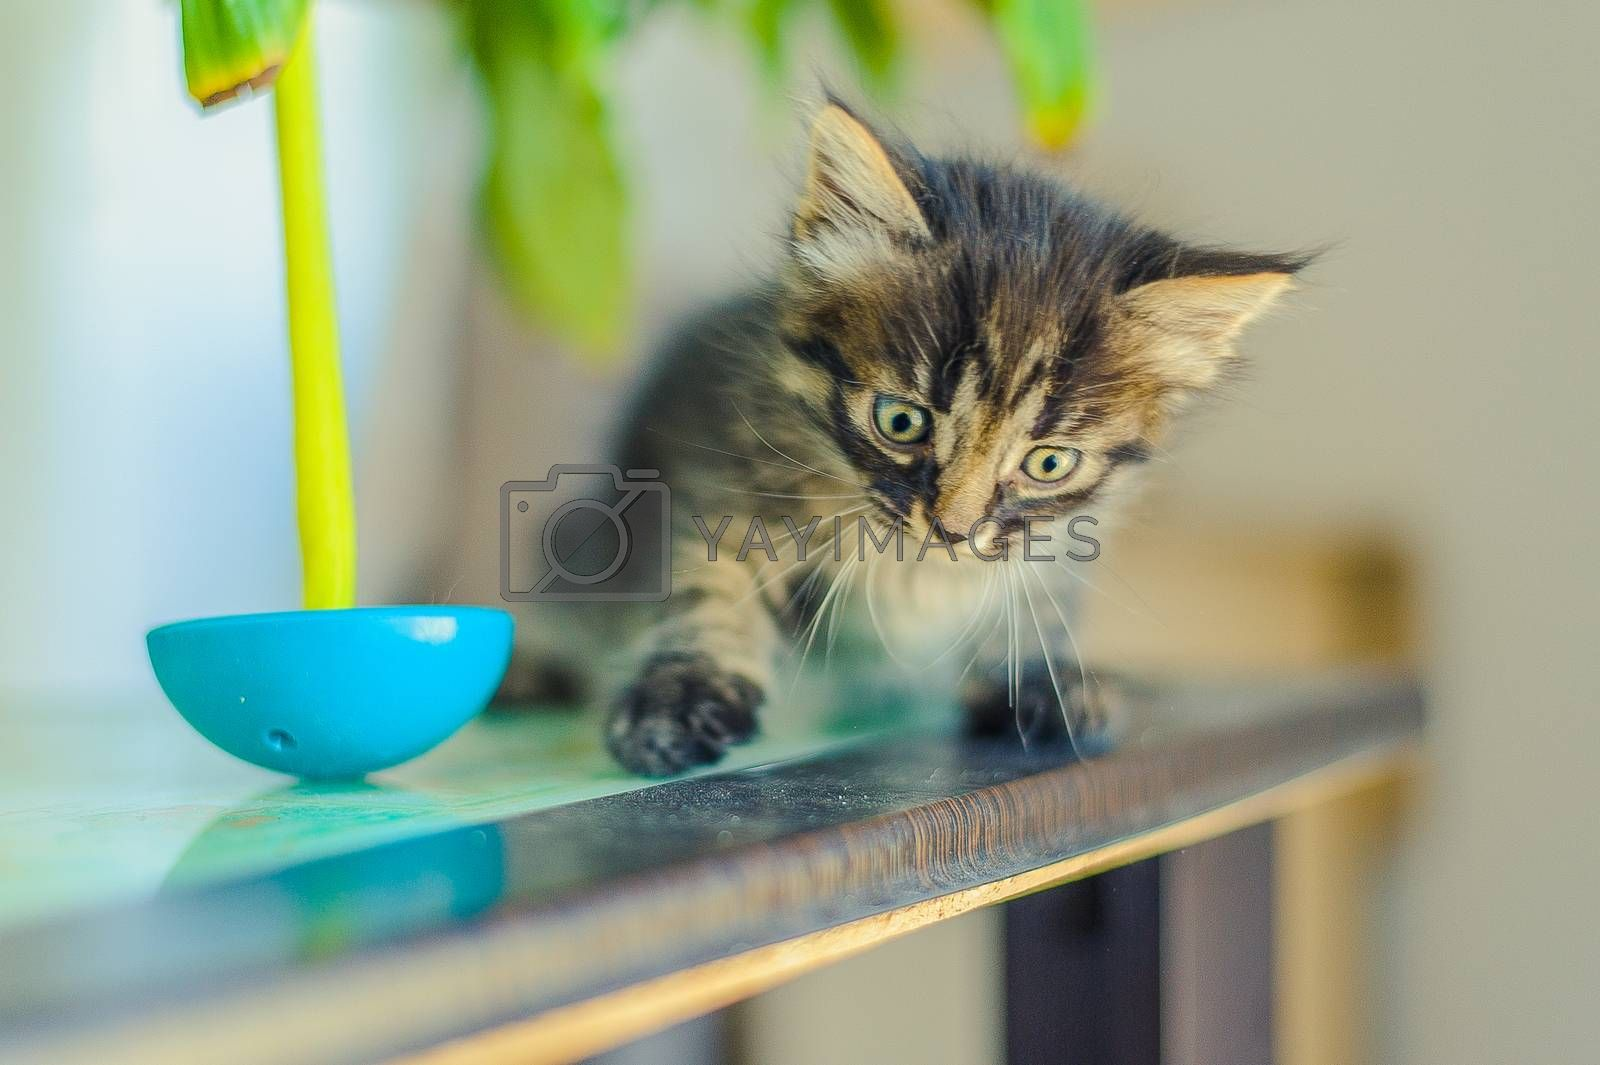 striped kitten sits on a table near a tilting toy